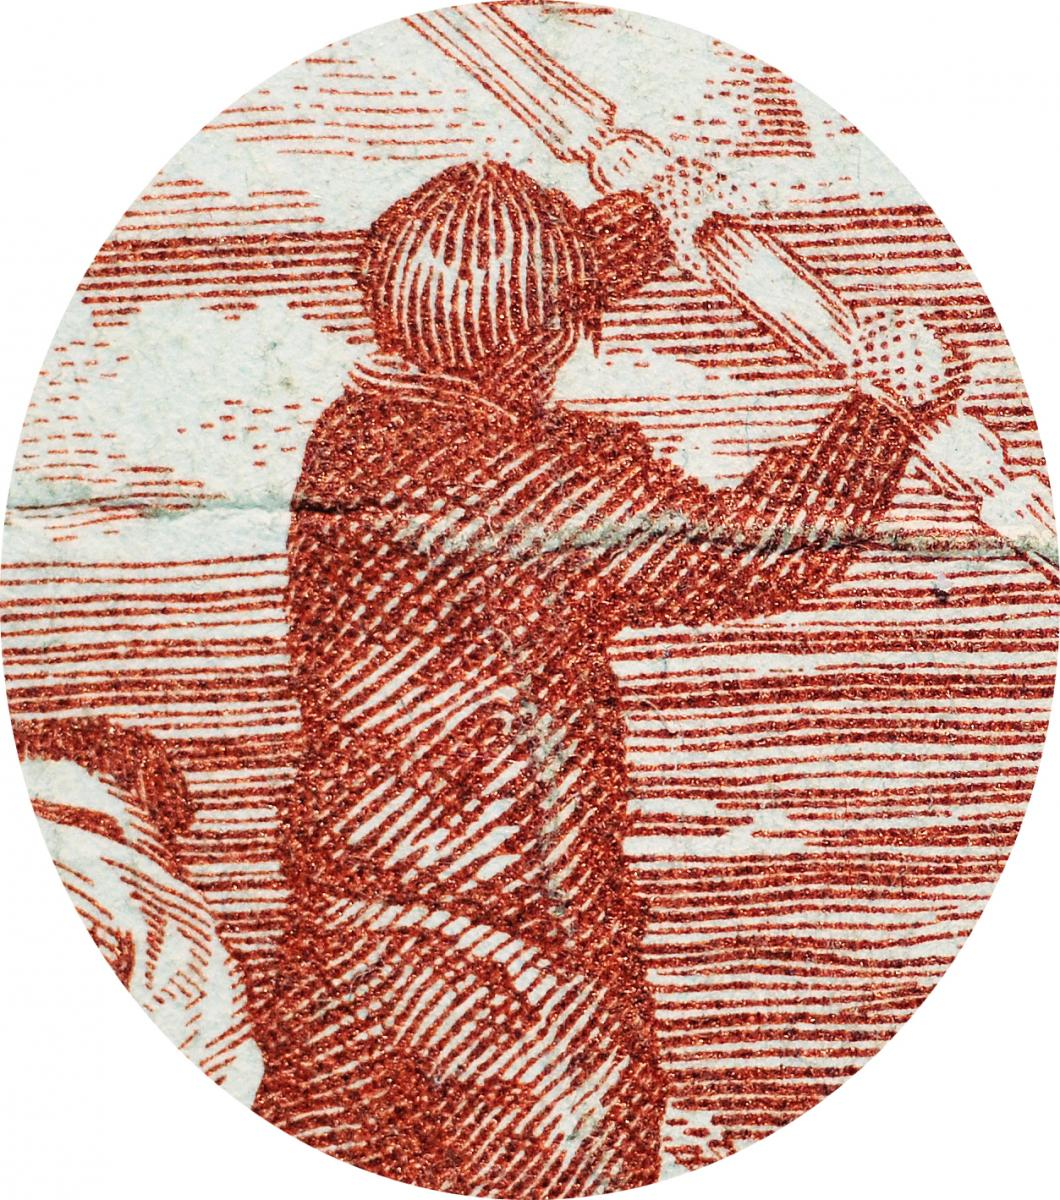 Engraving of man standing holding a paddle.